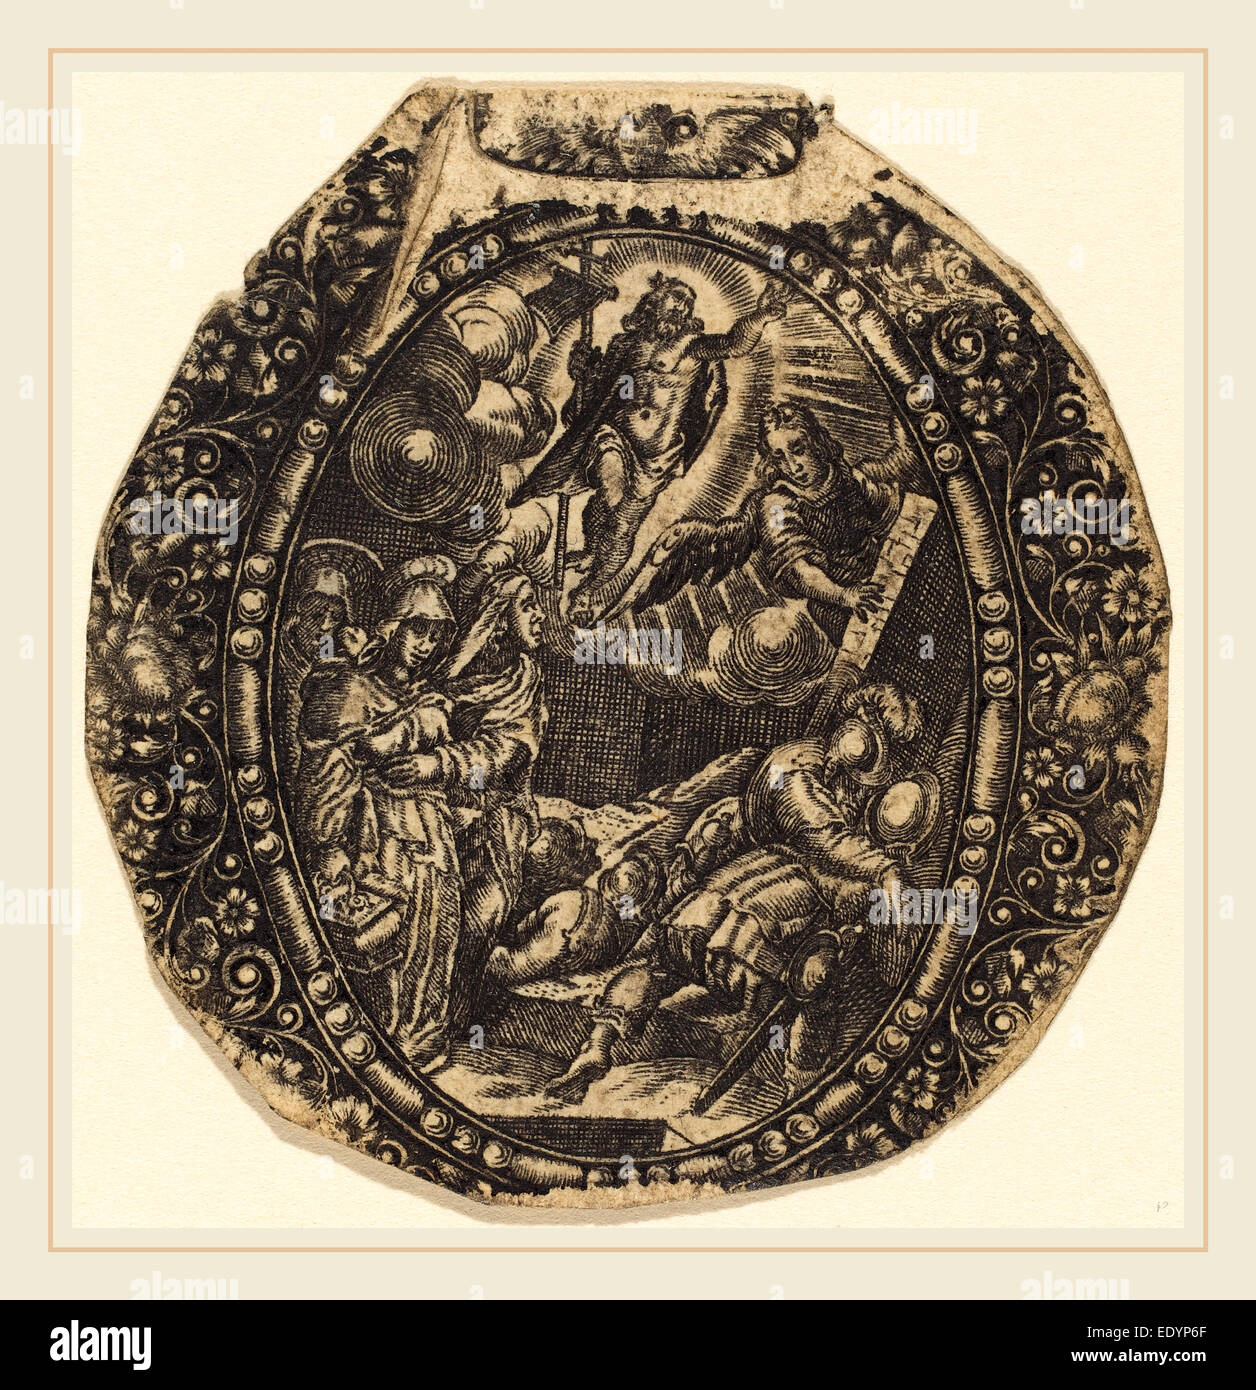 Antoine Jacquard, French (died 1652), The Resurrection, engraving - Stock Image